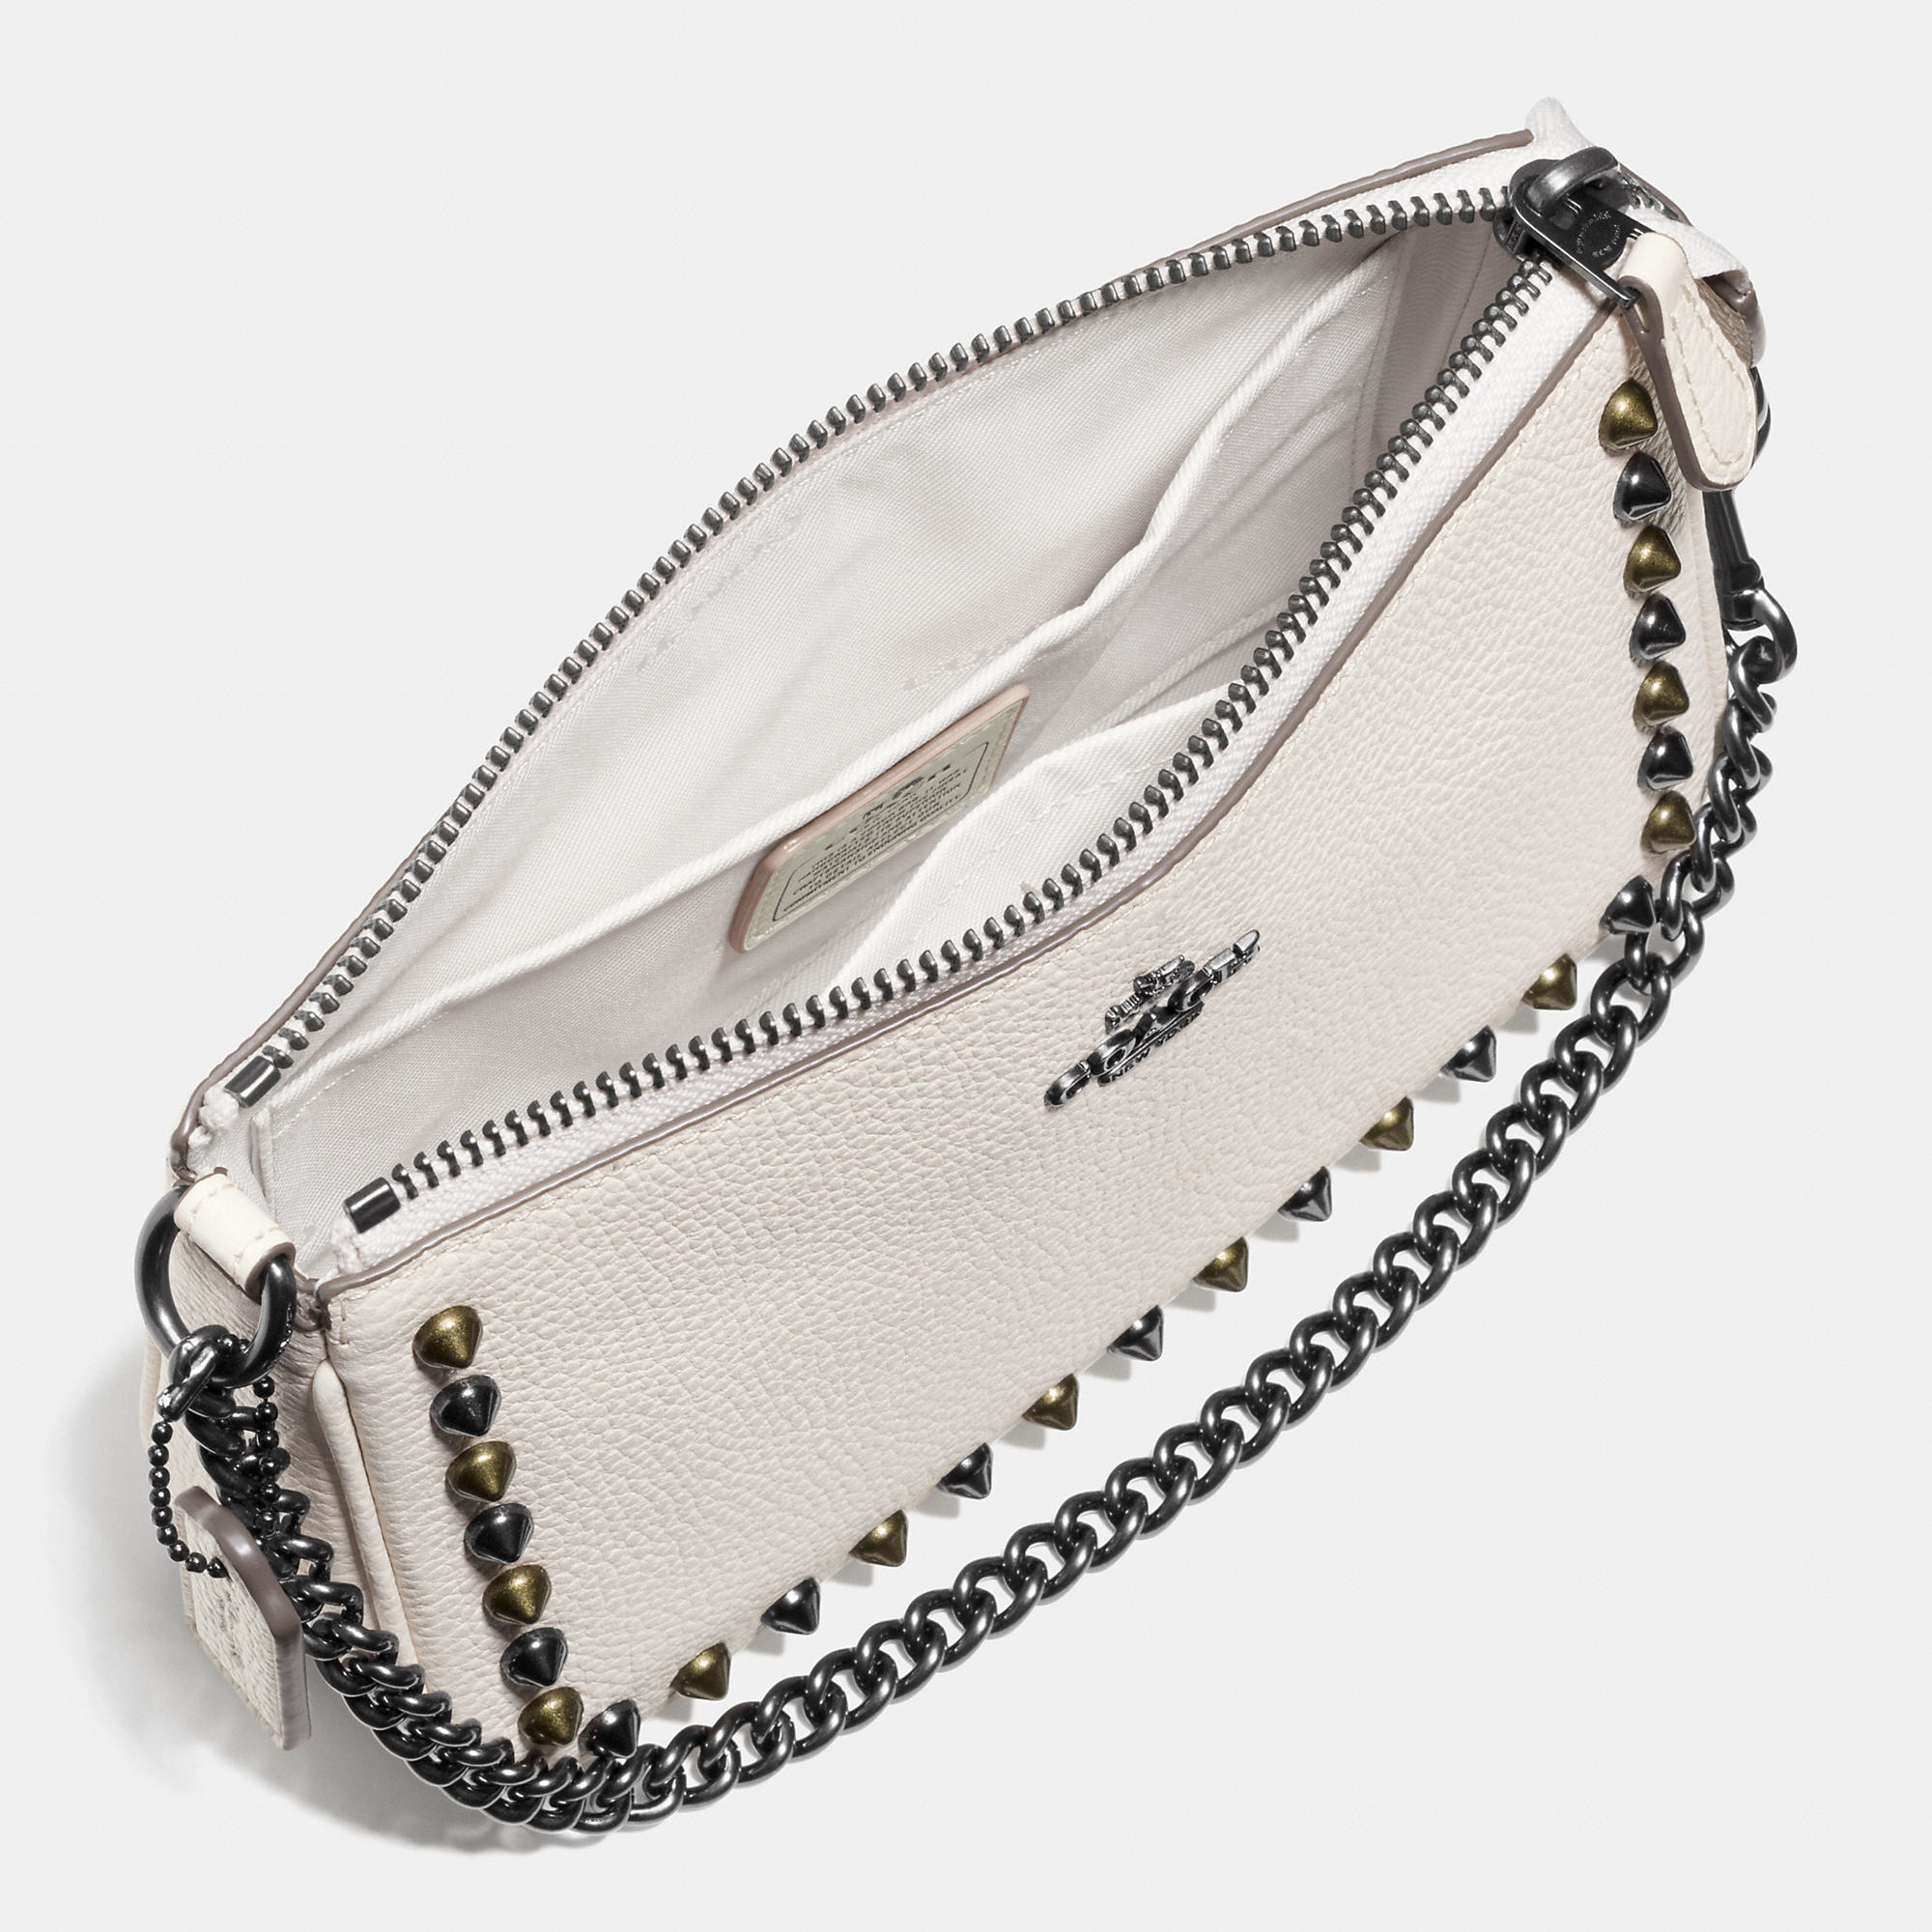 ... promo code coach outline studs nolita wristlet 19 in leather in white  lyst 491f8 f6b10 ... f9311e0f6d